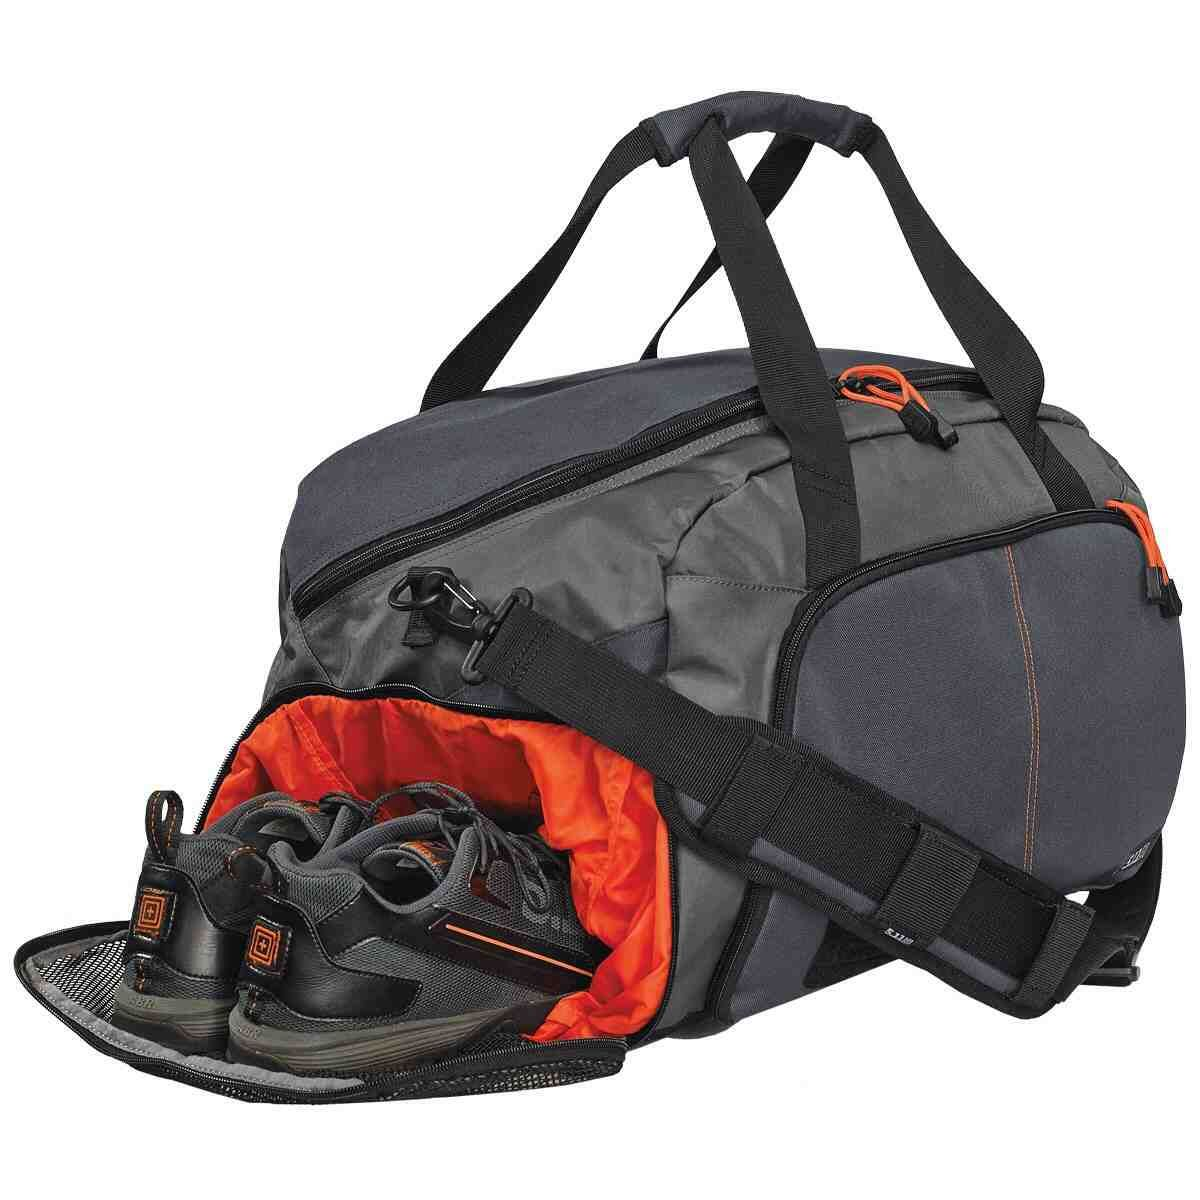 Gym Bag With Shoe Compartment Crossfit Gifts Gear Workout